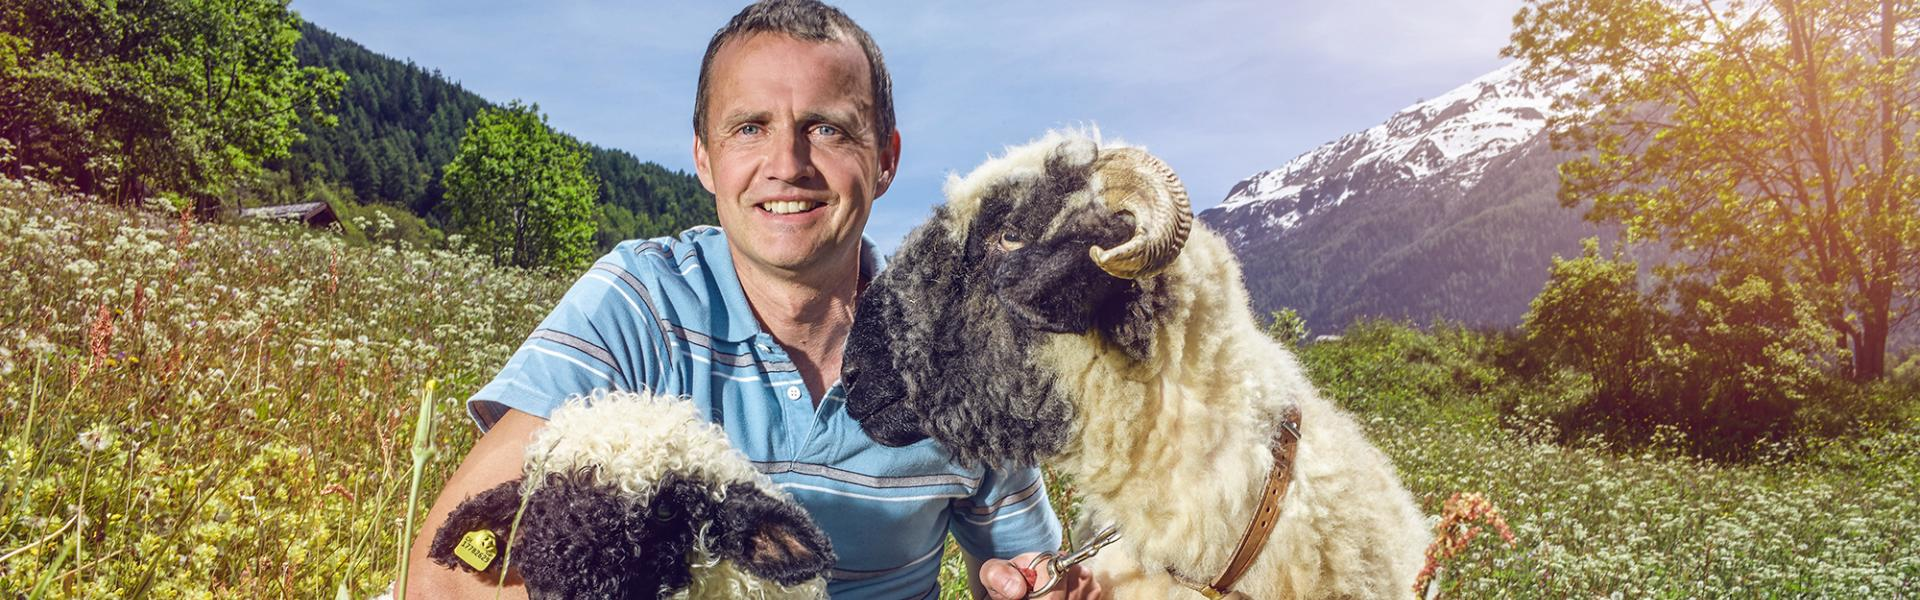 Didier de Courten and Blachnose breed